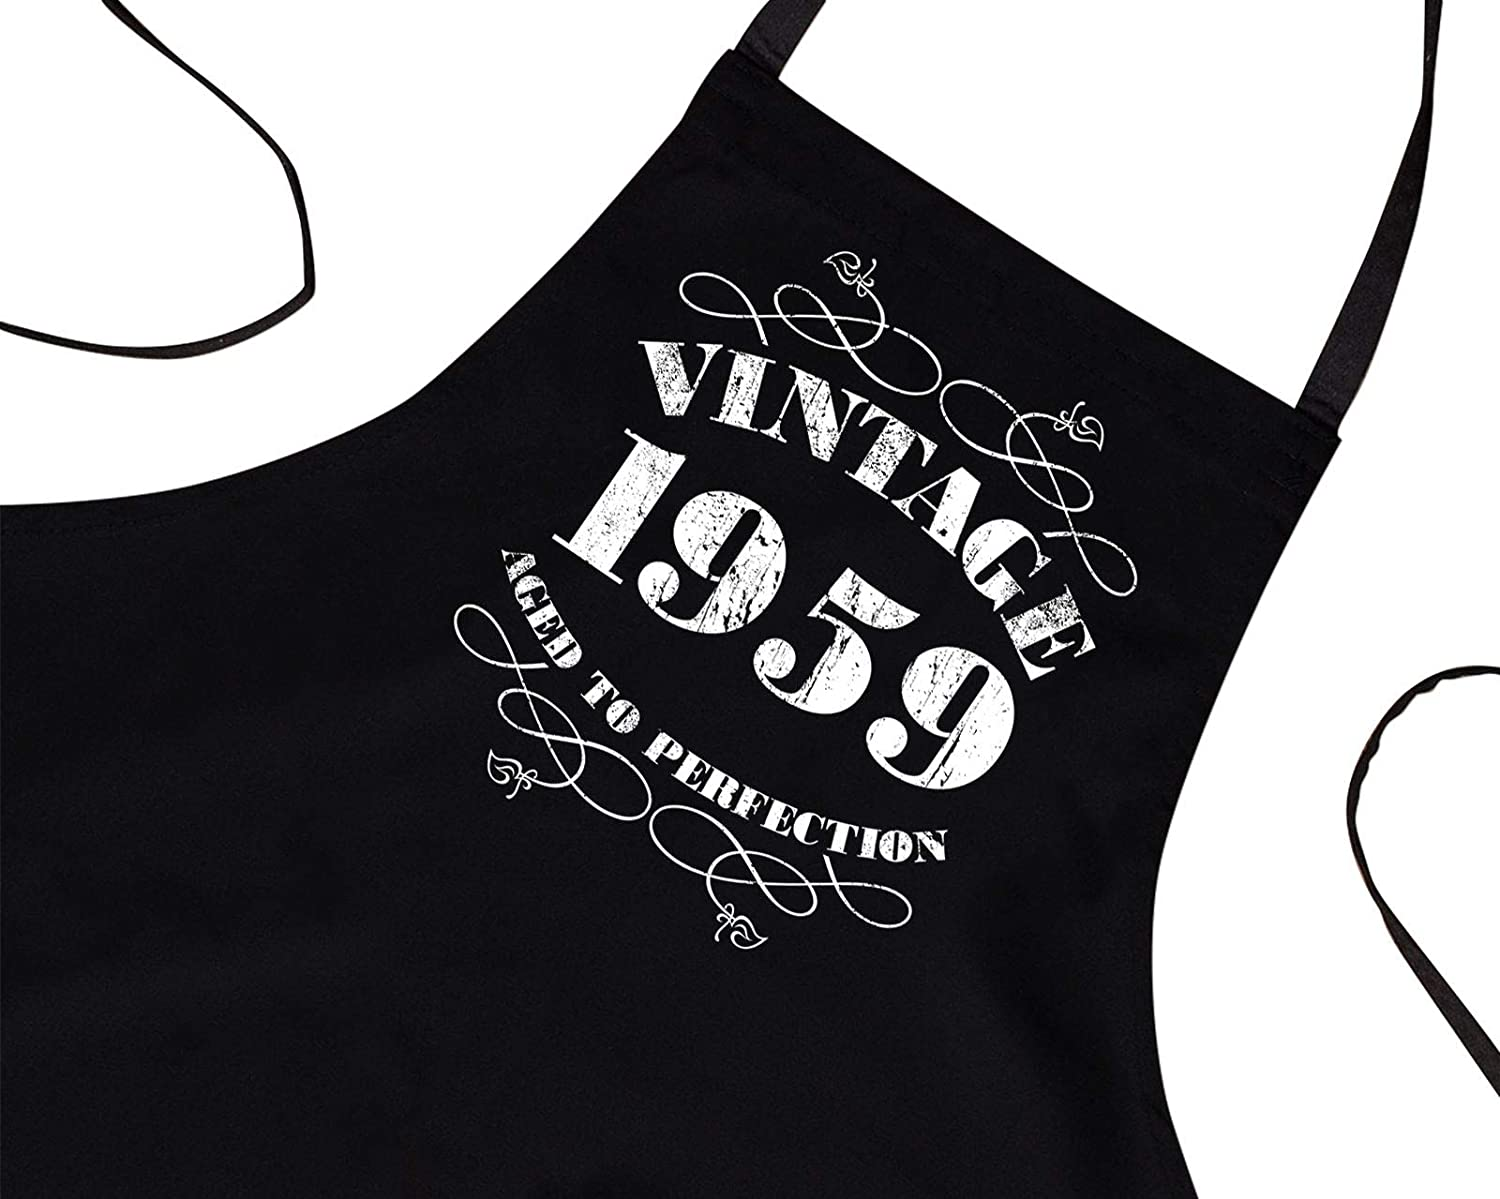 60th Birthday Gifts for Men Him Dad Husband BBQ Cooking Apron Vintage 1959 Bang Tidy Clothing RA472